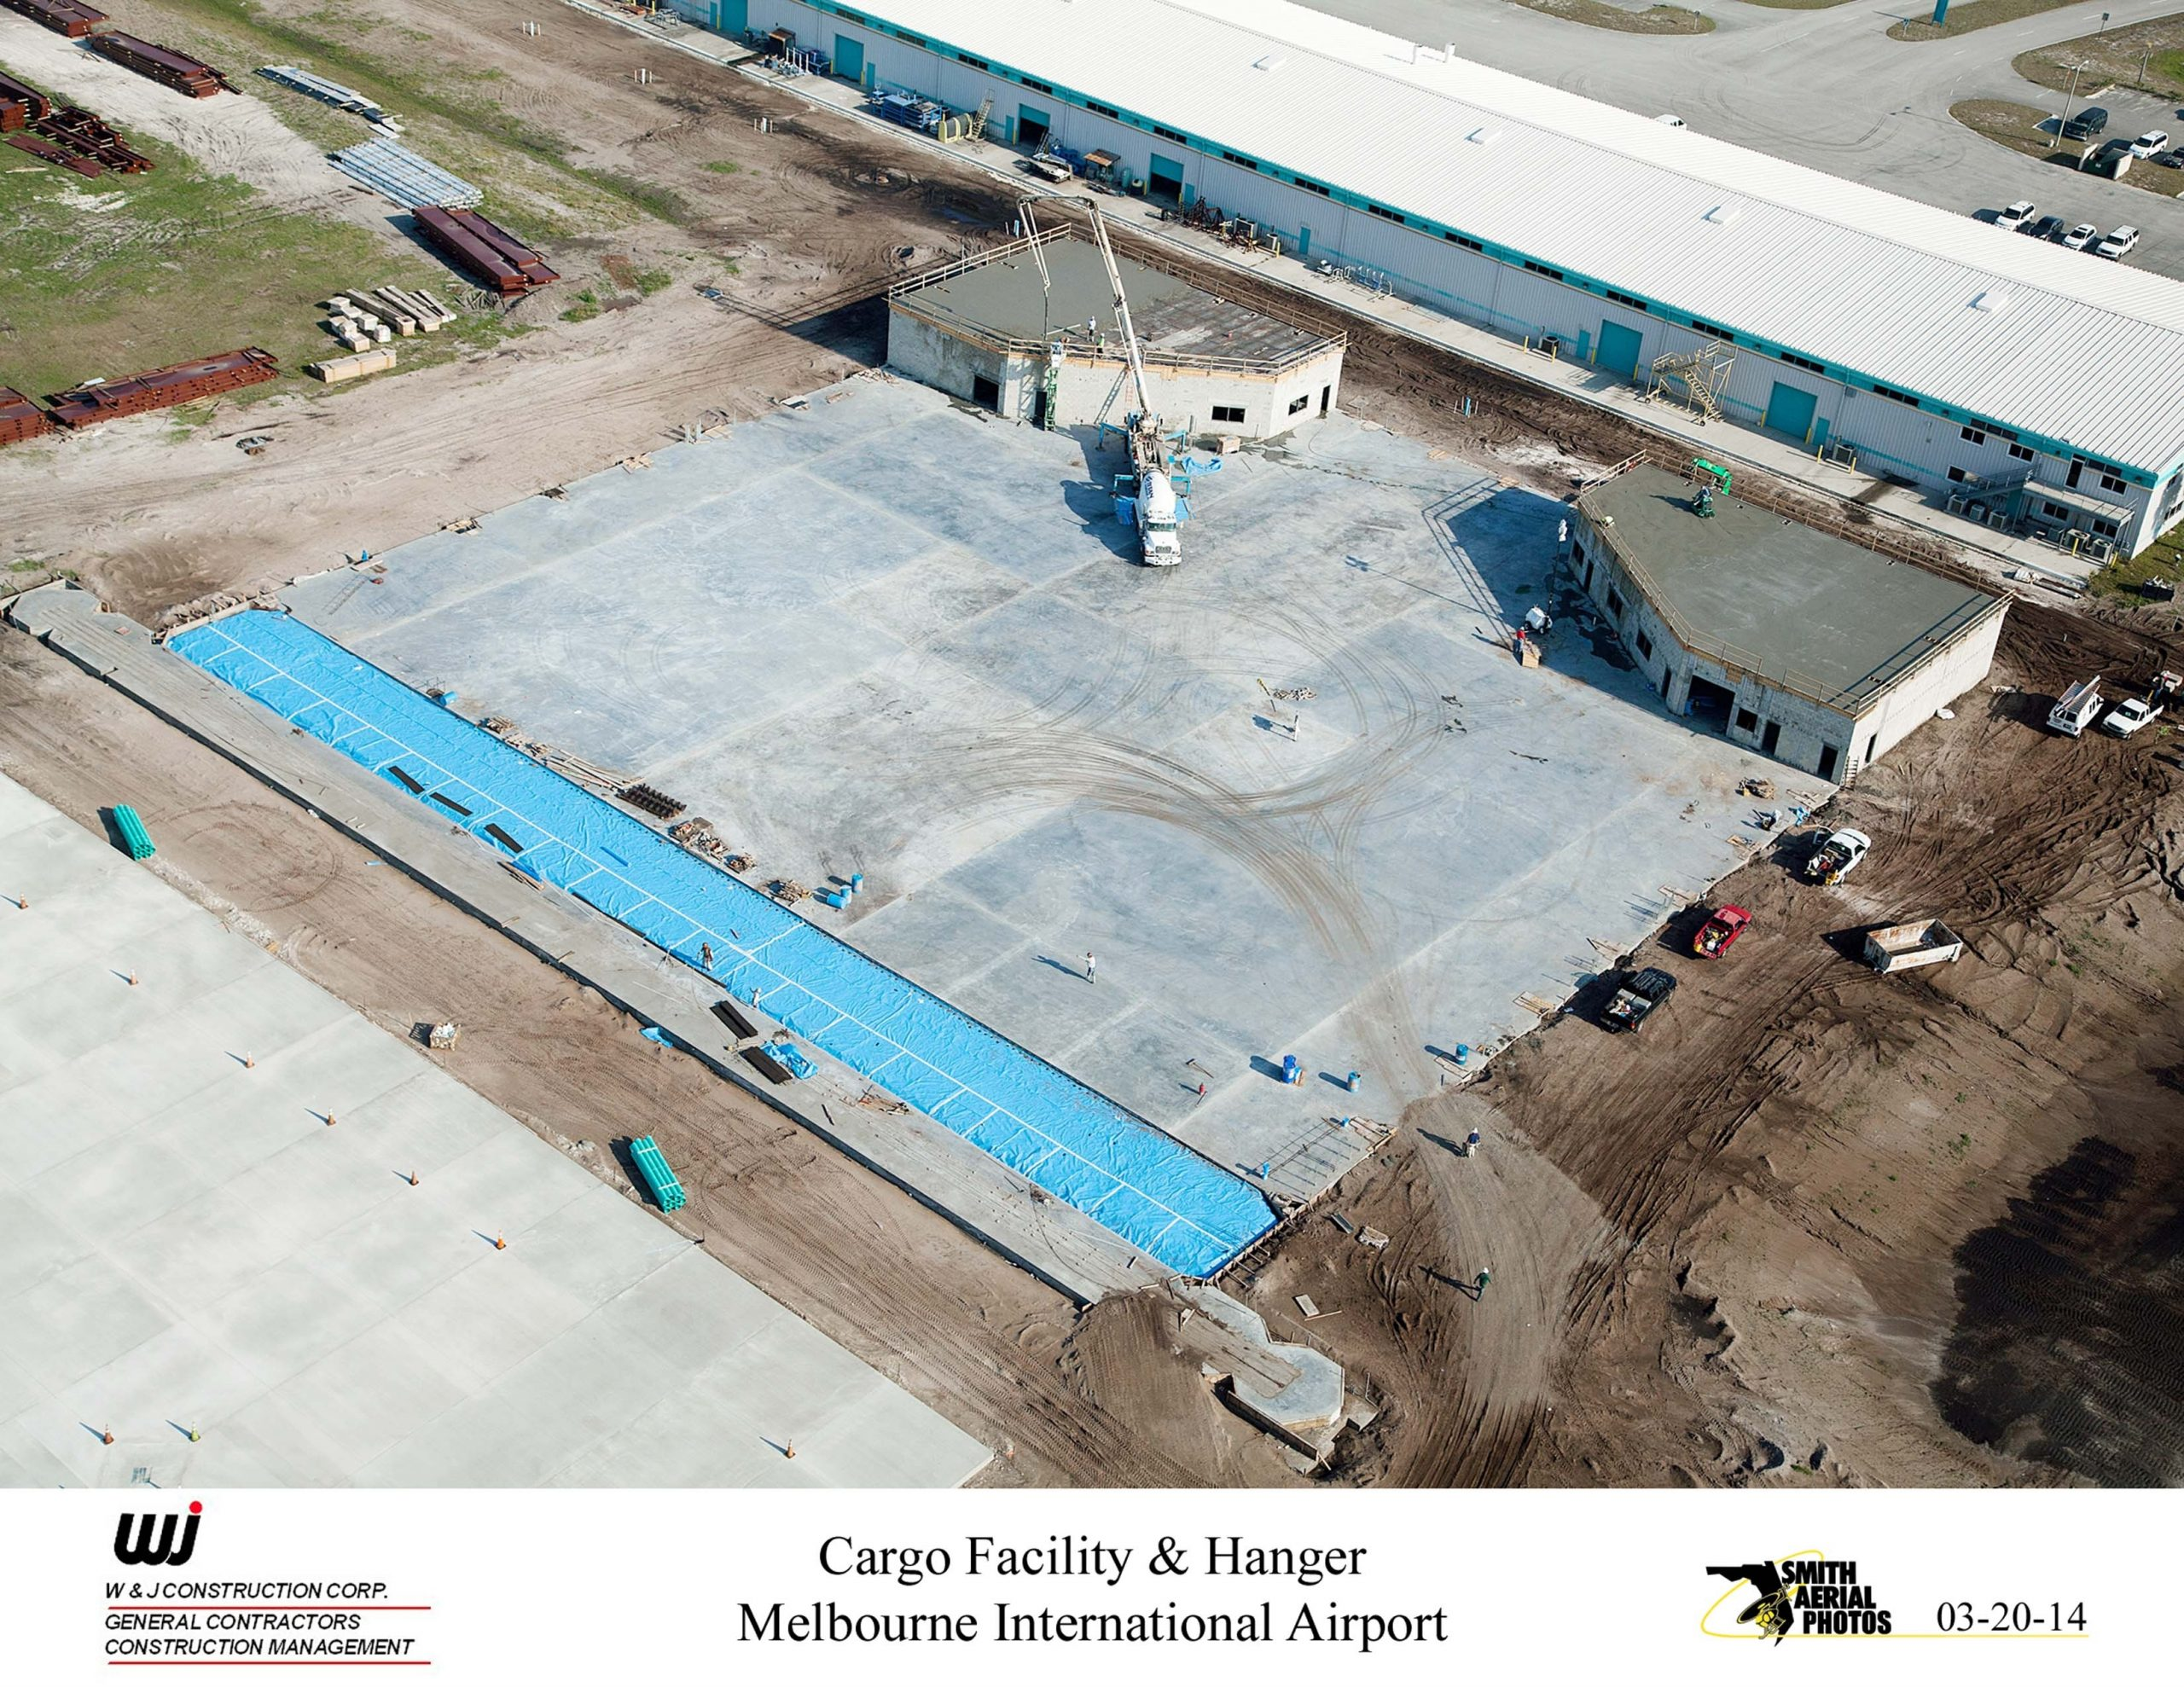 Melbourne Airport Cargo Facility & Hangar - W+J Construction intended for Trs Facility Melbourne Airport Map